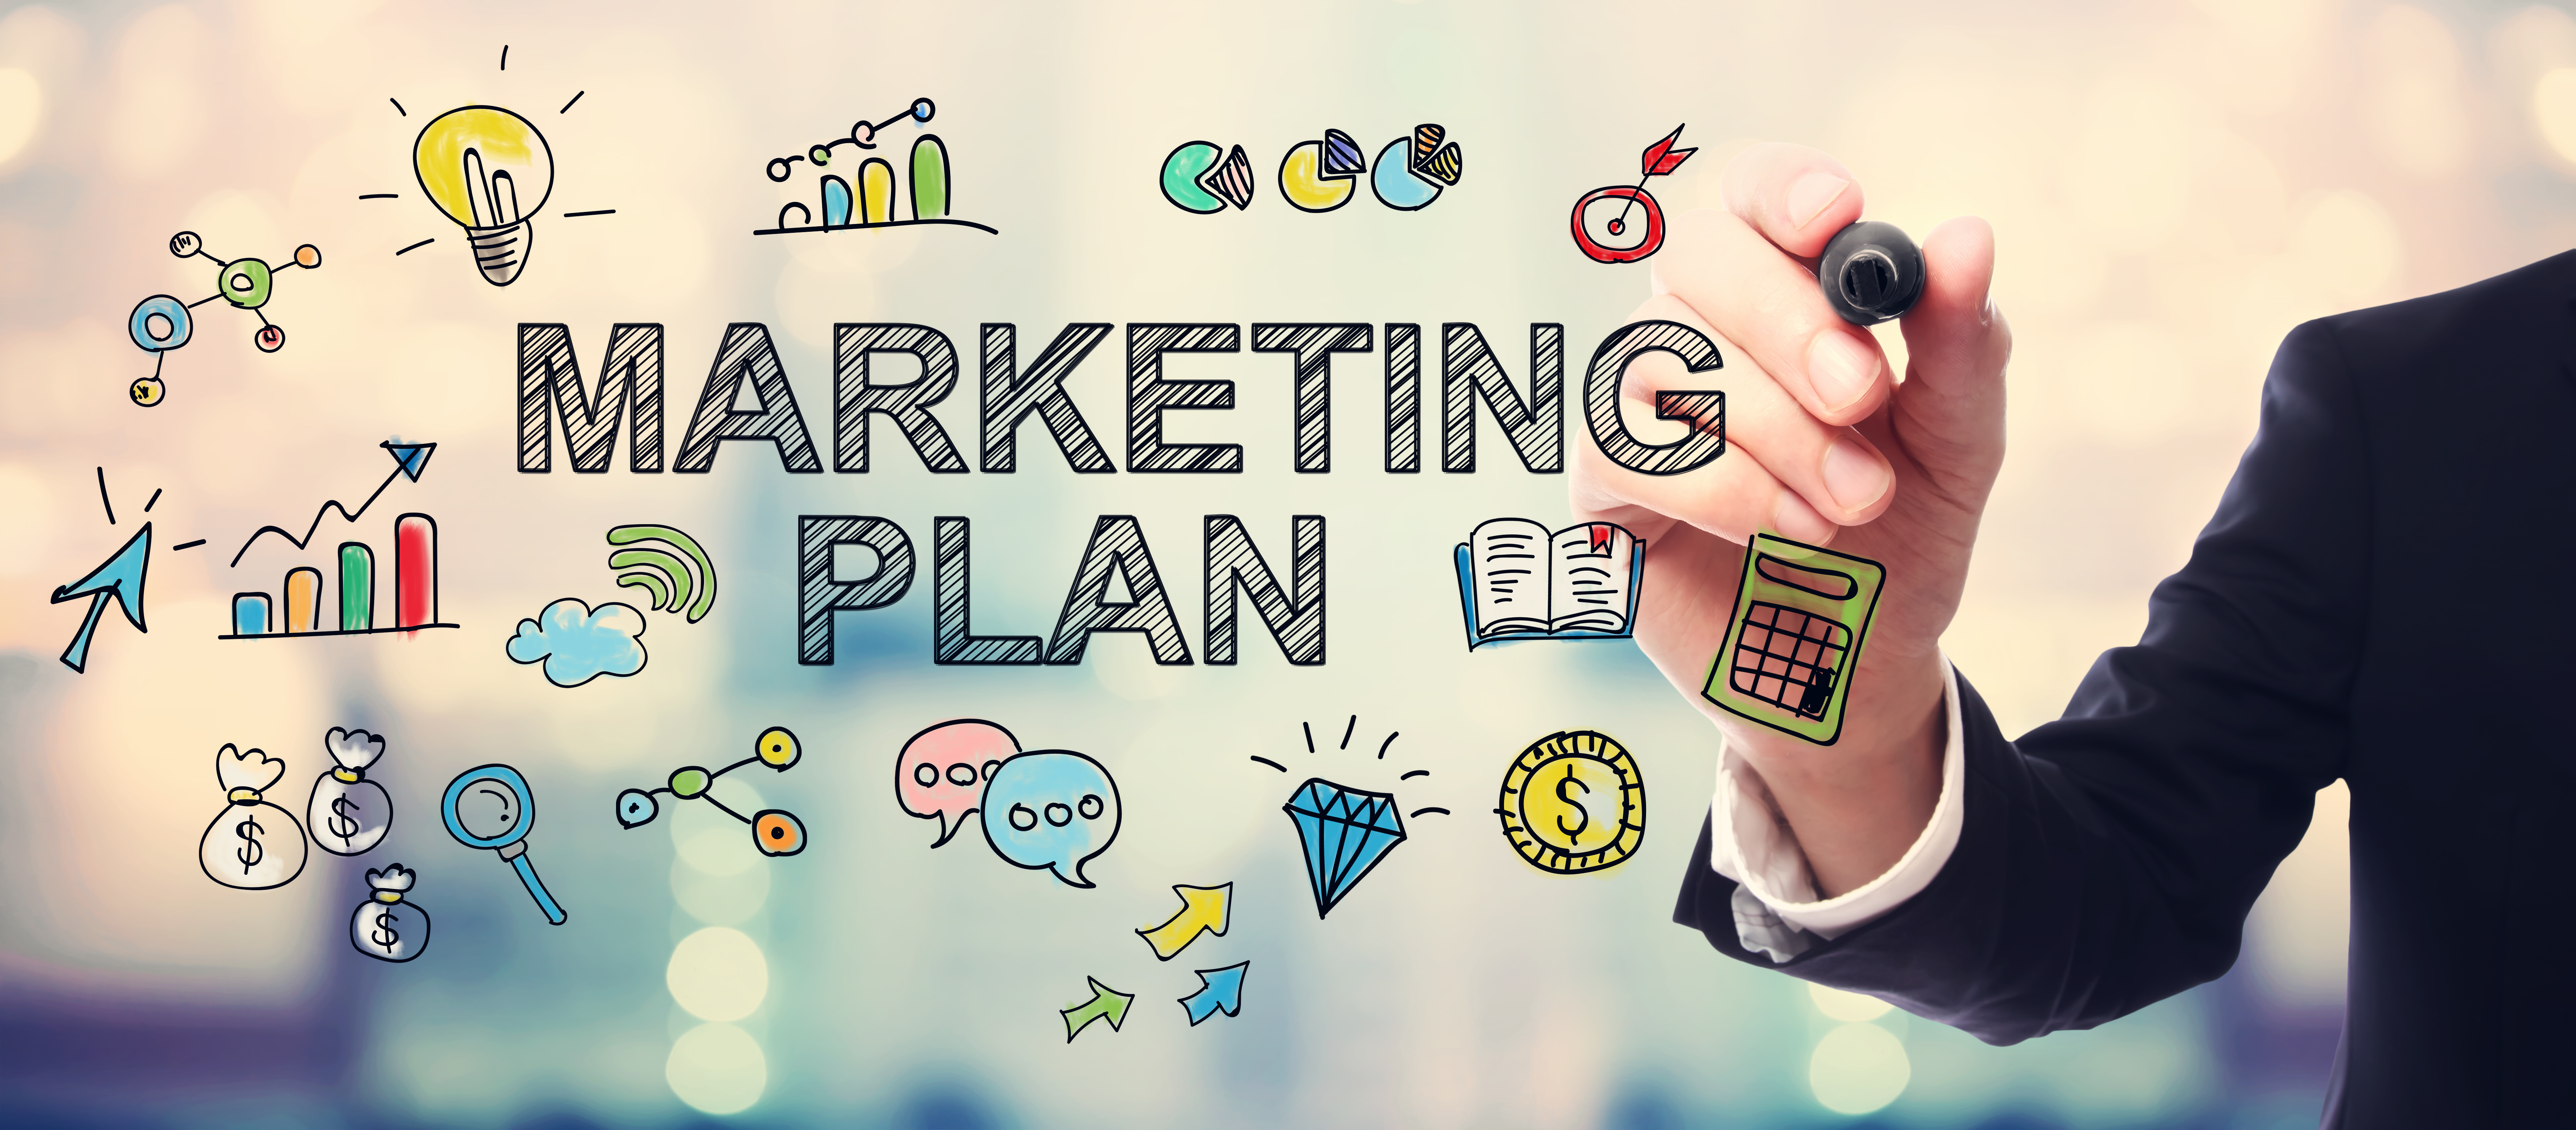 marketing plan Marketing is a key component in the success of every small business find out how to create a plan that works for you.